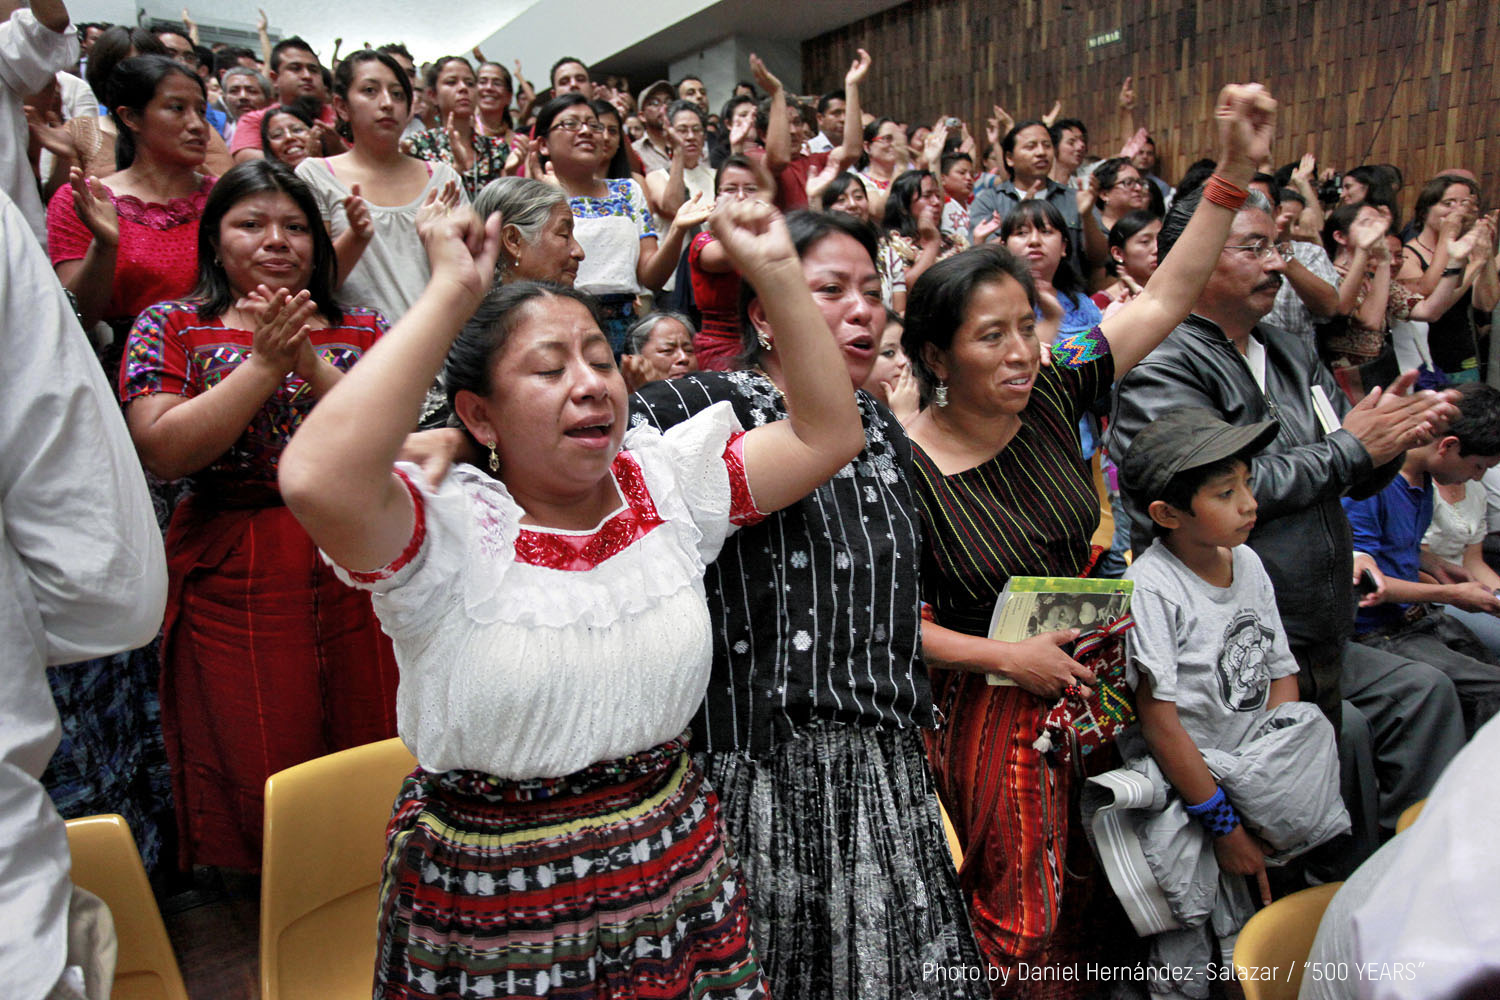 People cheer after the judges announce a guilty verdict against Ríos Montt in 2013.